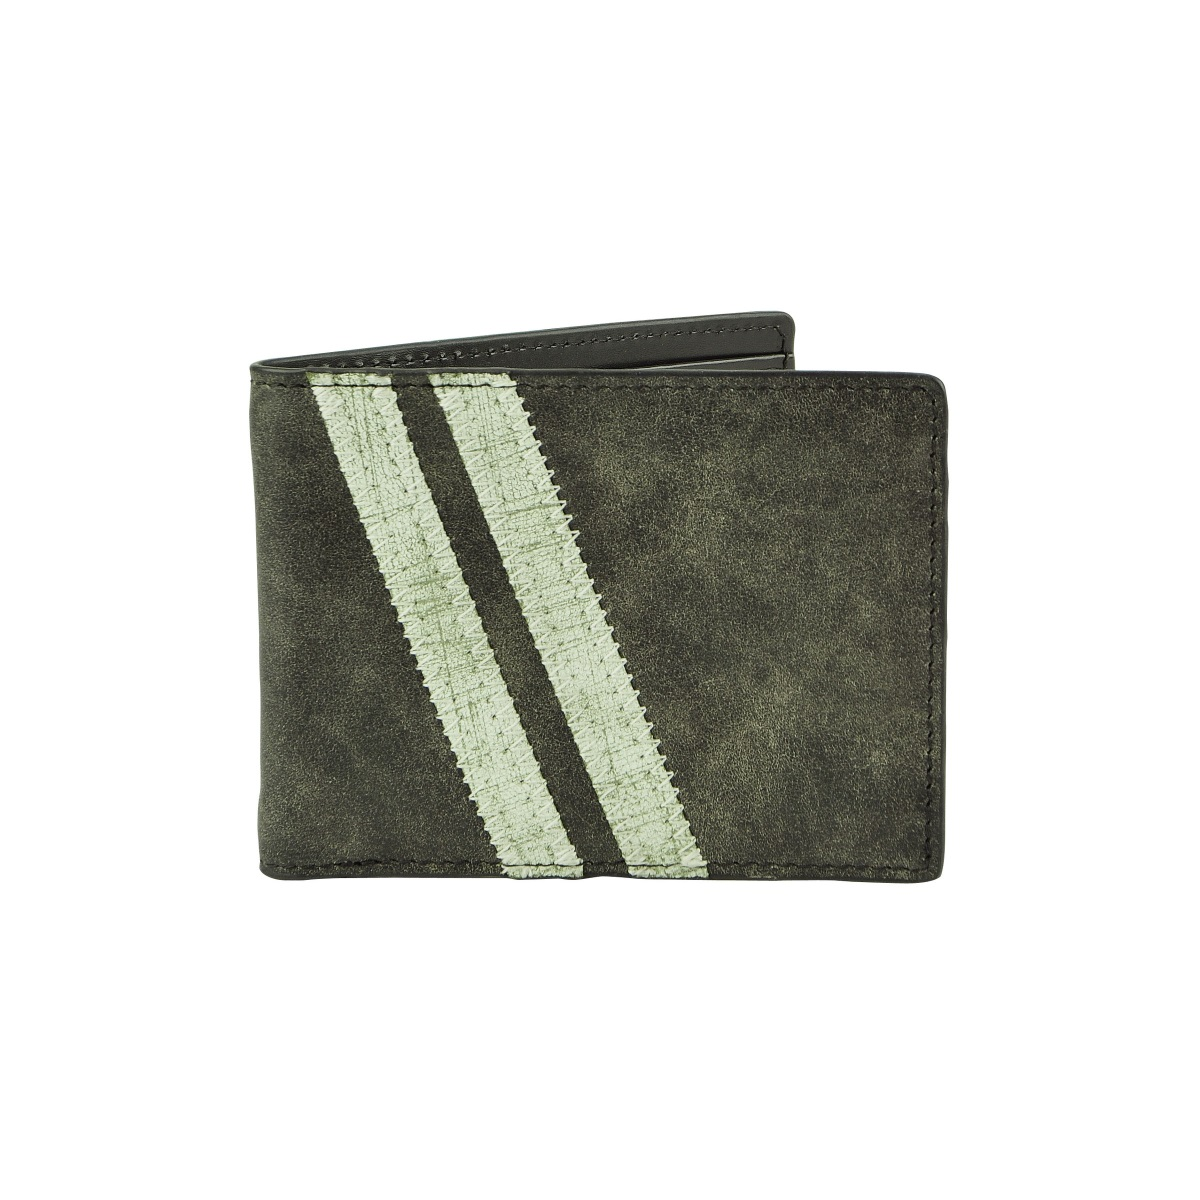 J.FOLD Zig Zag Roadster Leather Wallet - Black